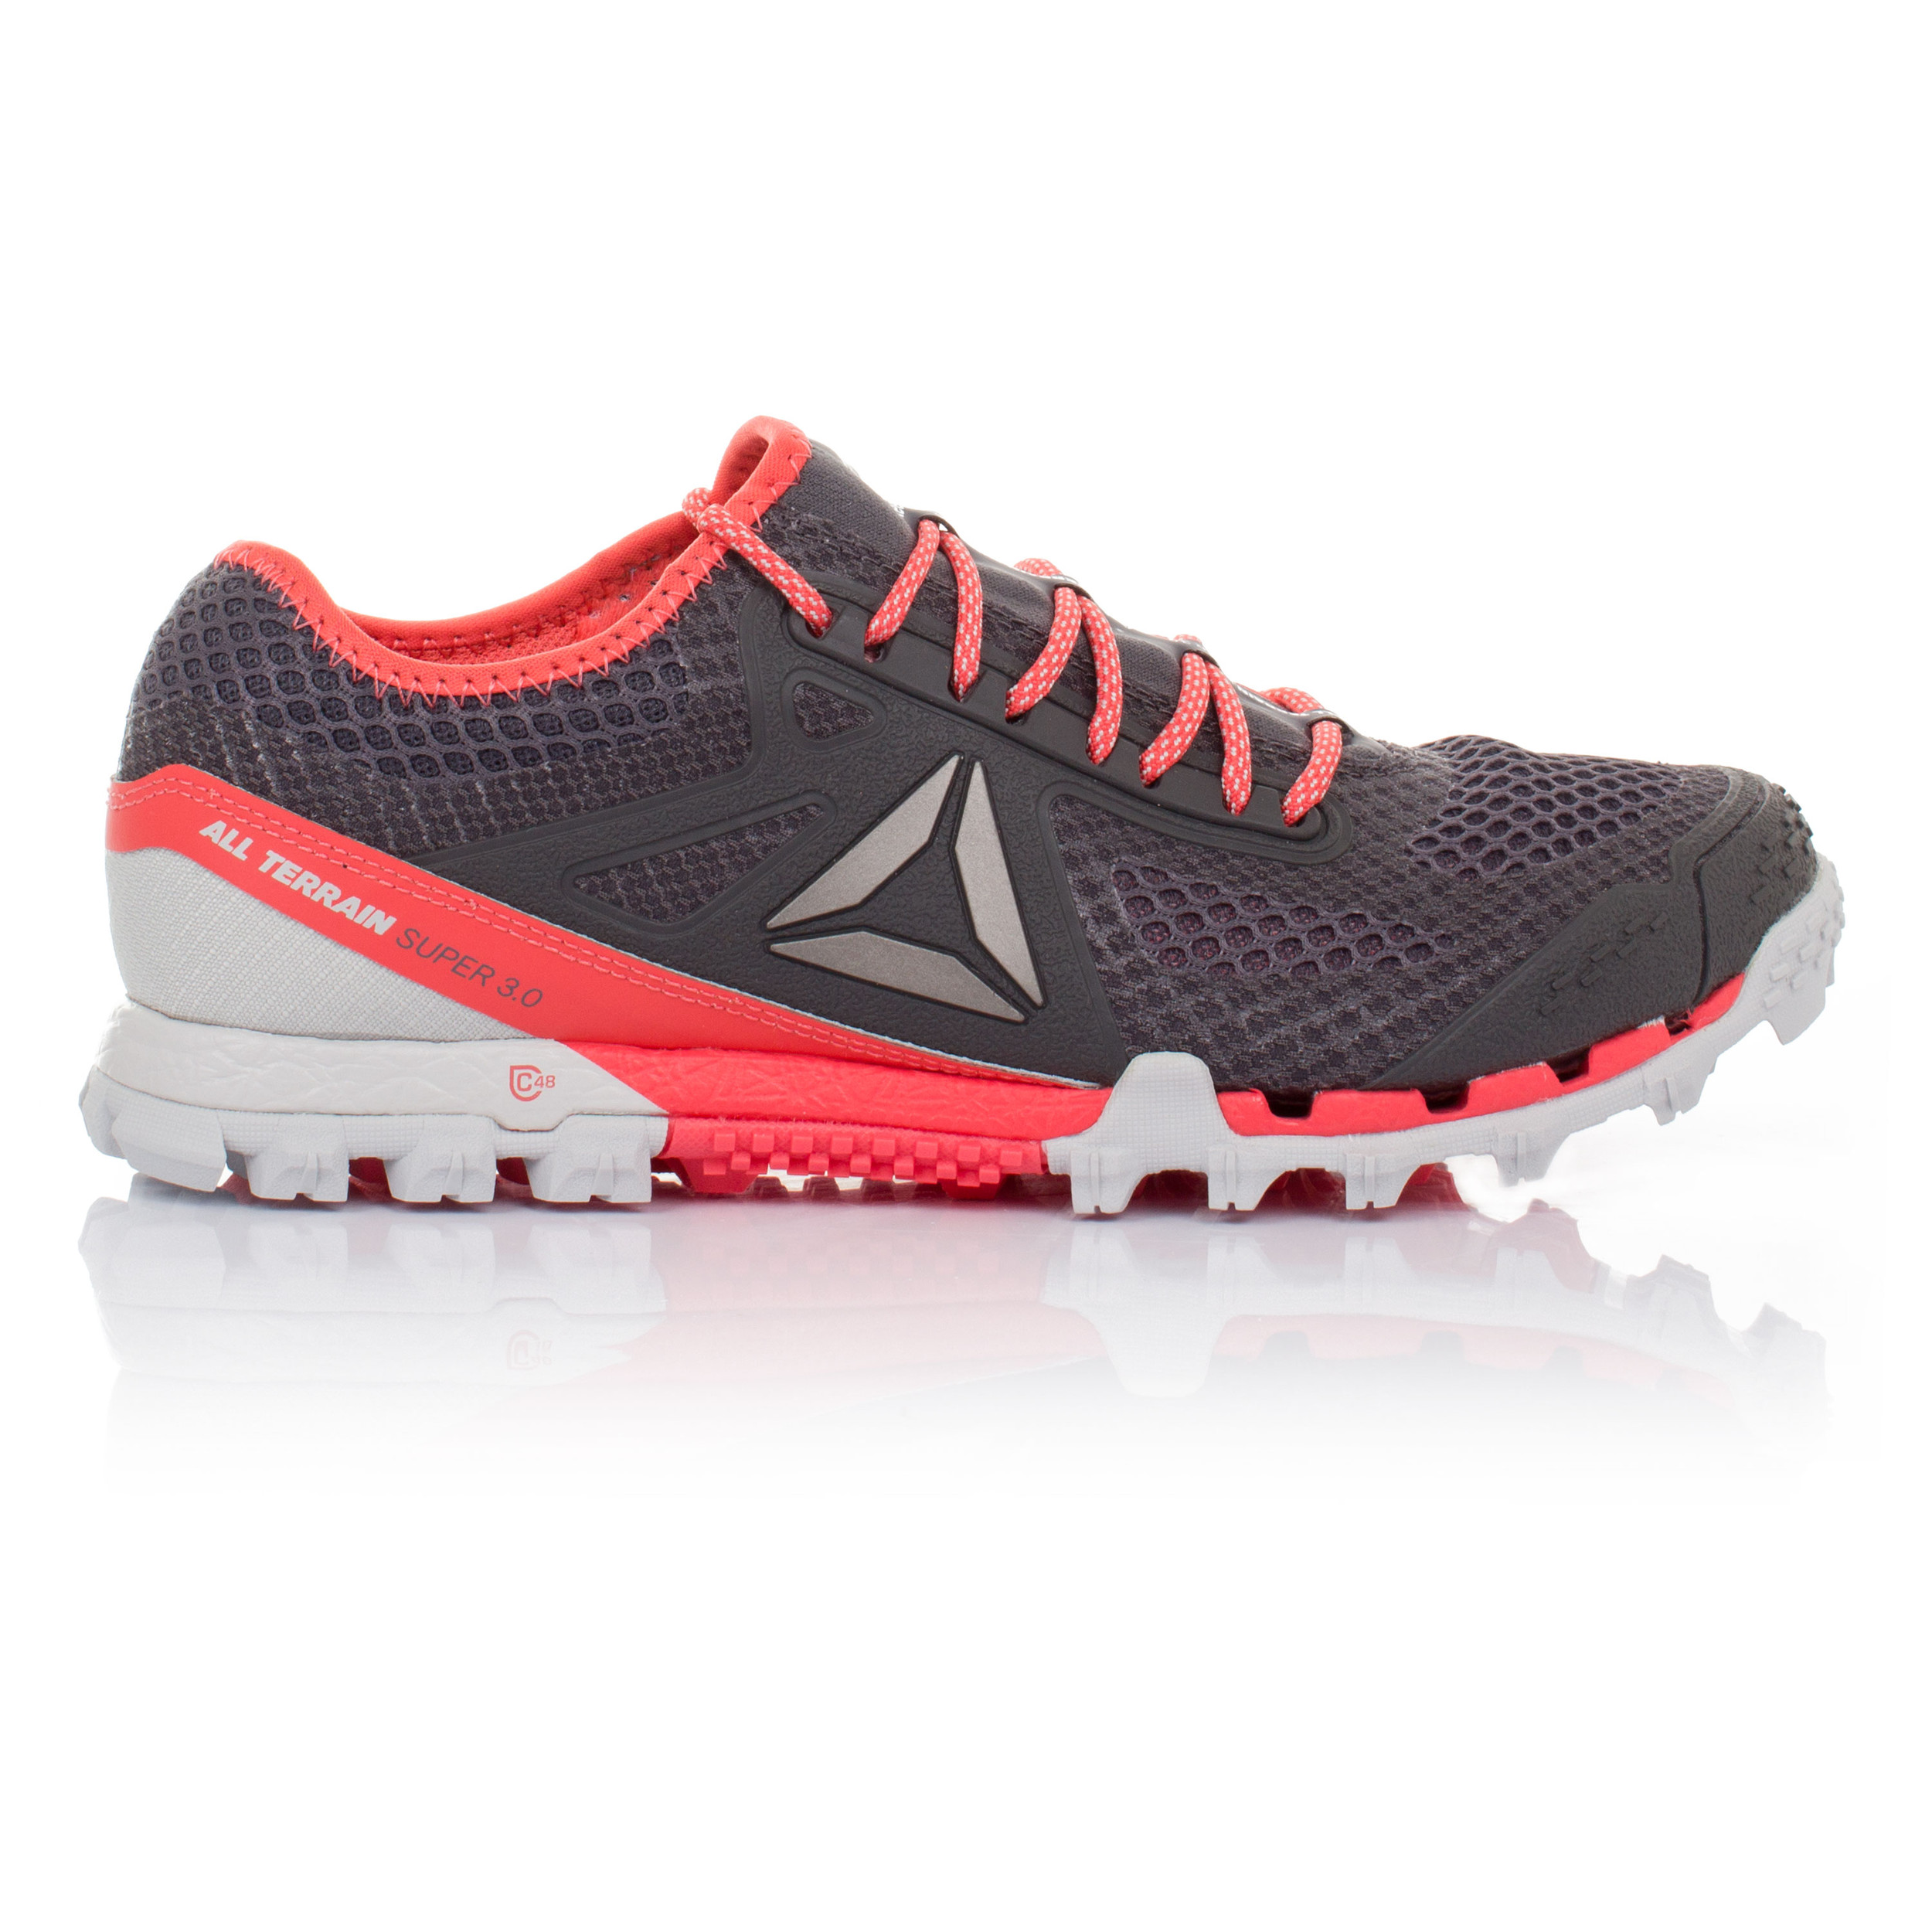 Reebok AT SUPER 3.0 - Neutral running shoes - multicolour MNAGuZXgS4